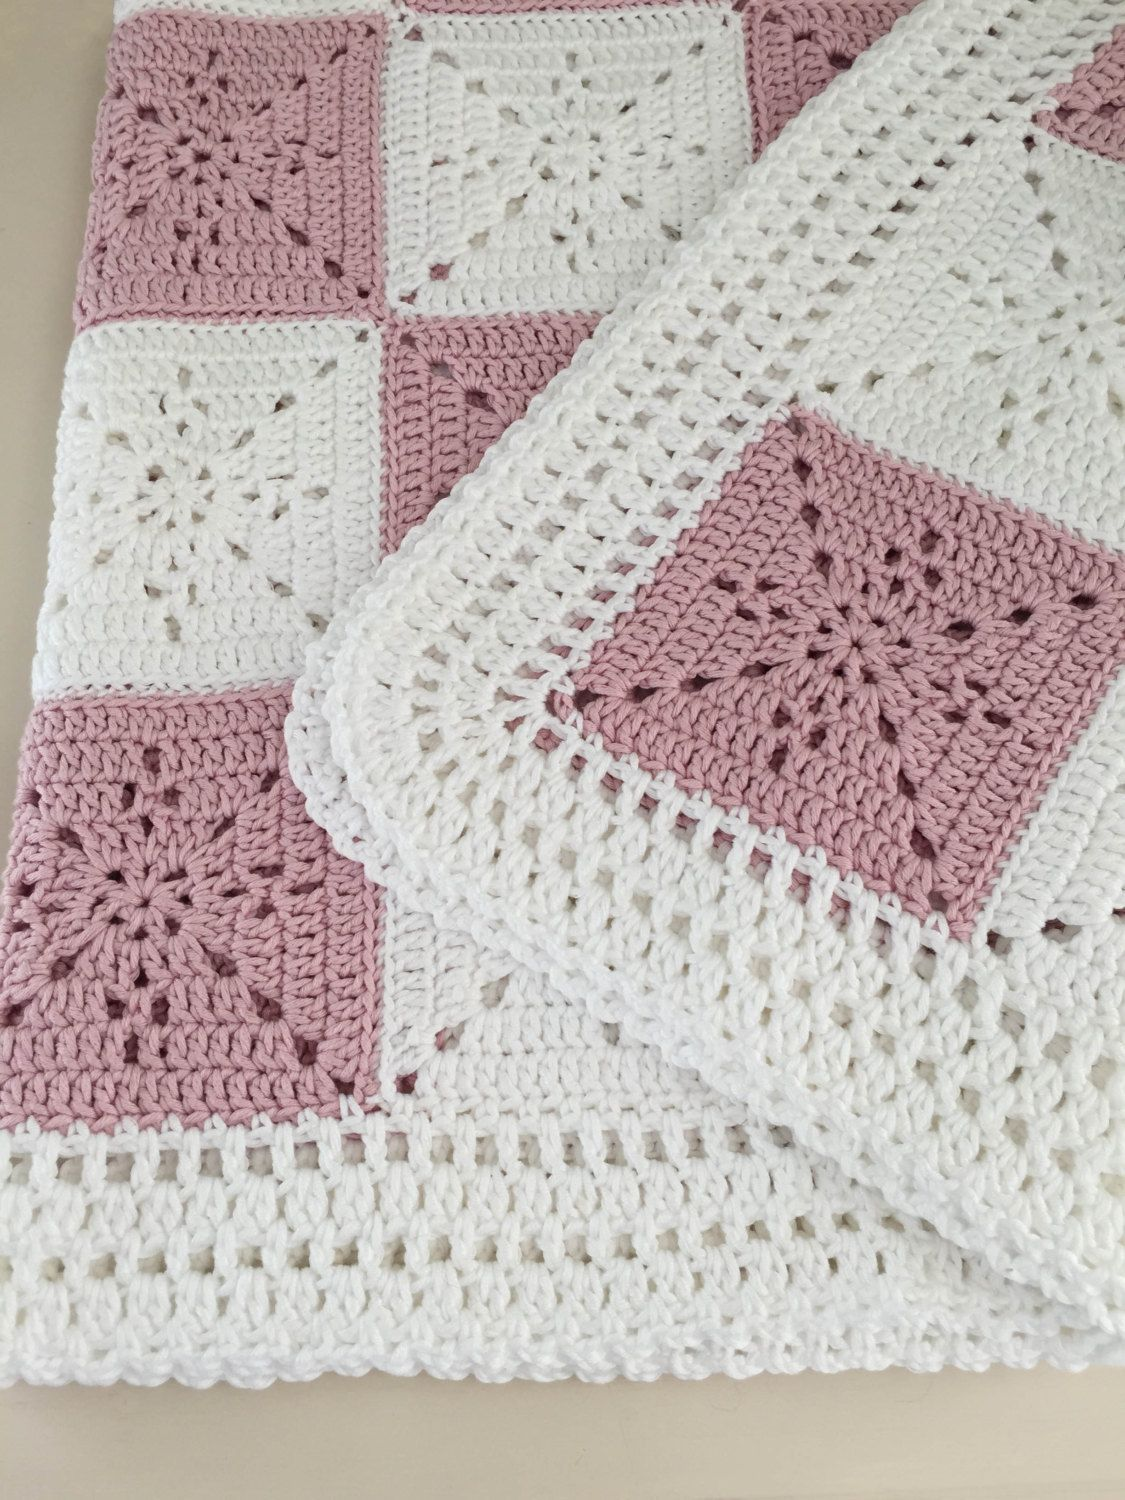 Crochet baby blanket or throw pattern arielles square this crochet baby blanket or throw pattern arielles square this pattern was designed for my niece bankloansurffo Image collections